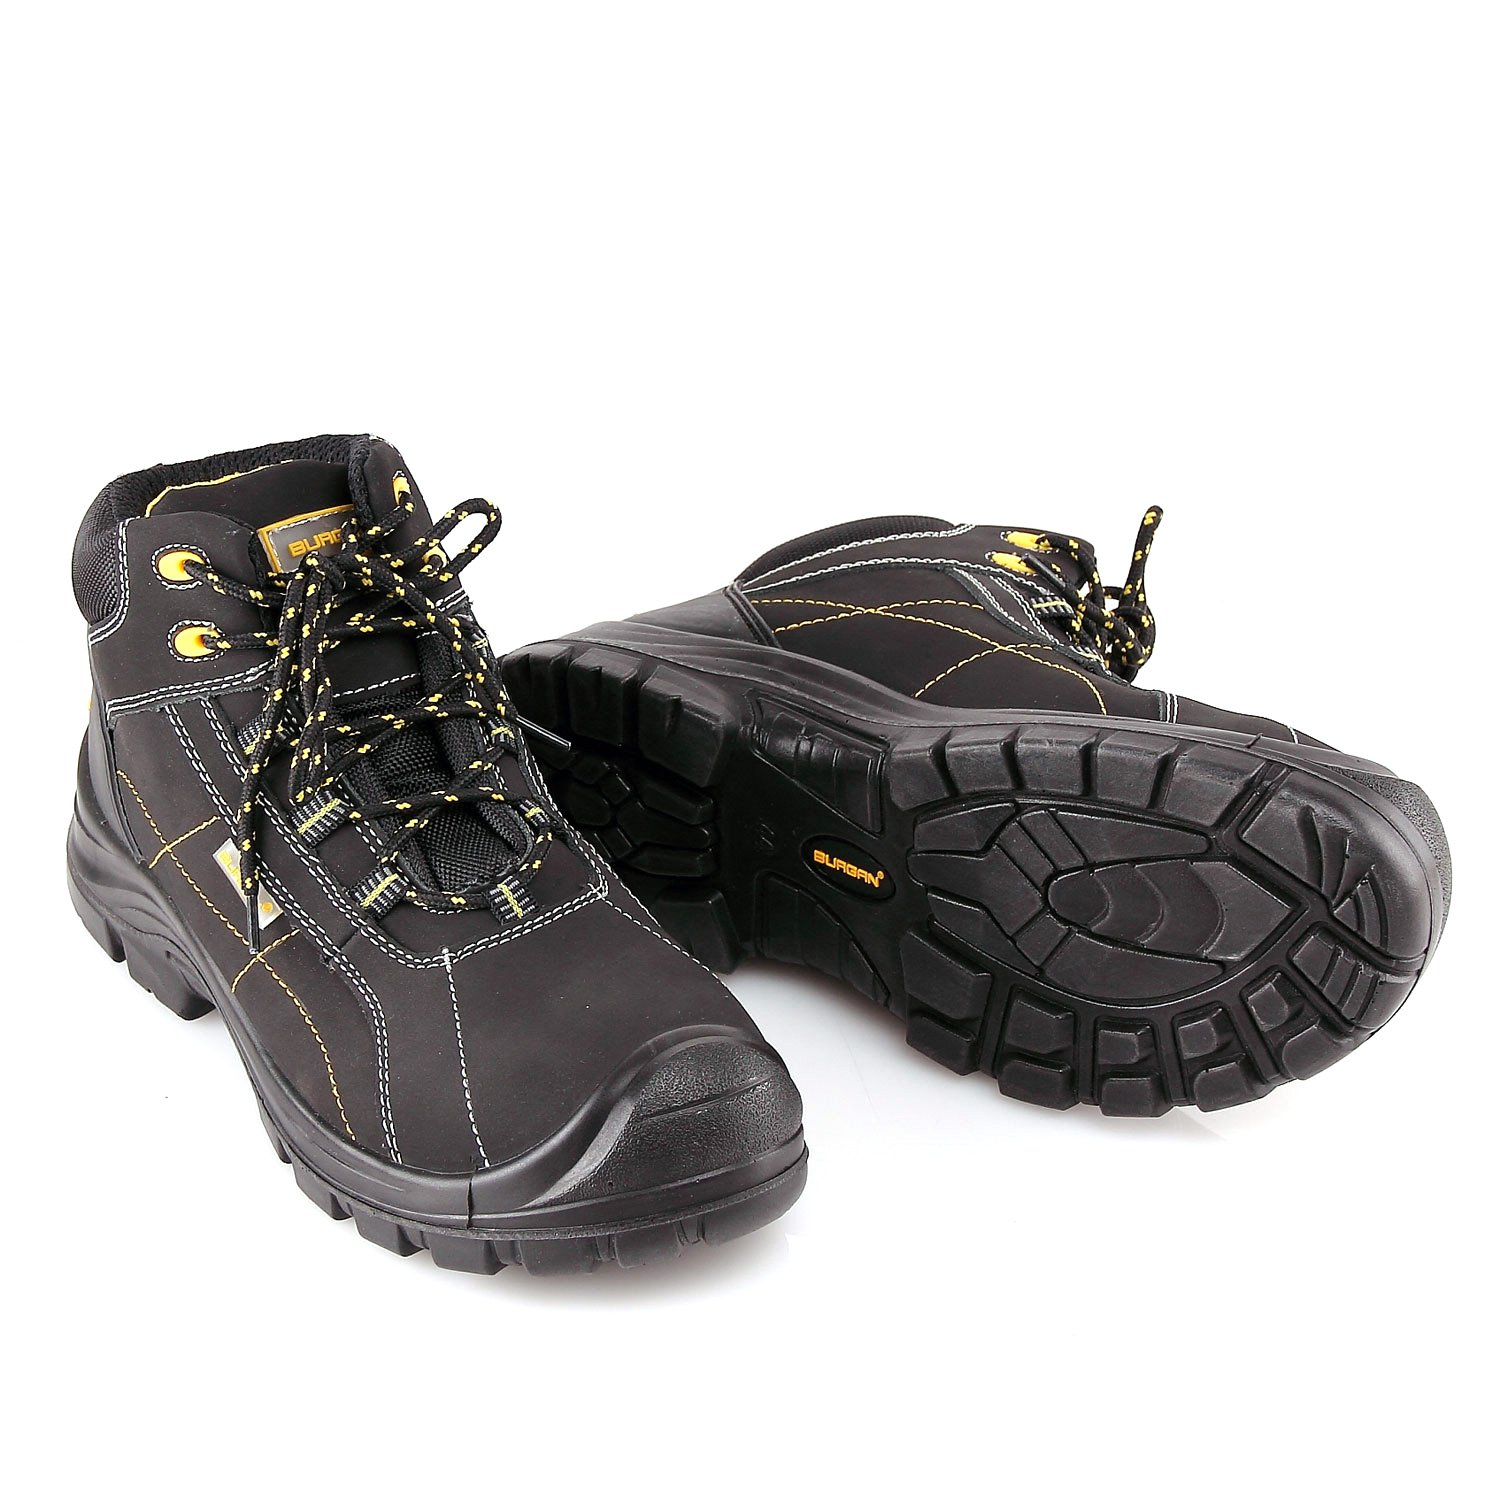 BURGAN 290 Safety Work Boot with Composite Anti-Penetration Midsole and Toe - Sport Casual Inspired Design for Men and Women (43 (US Mens 9/Ladies 10), Yellow Accent)